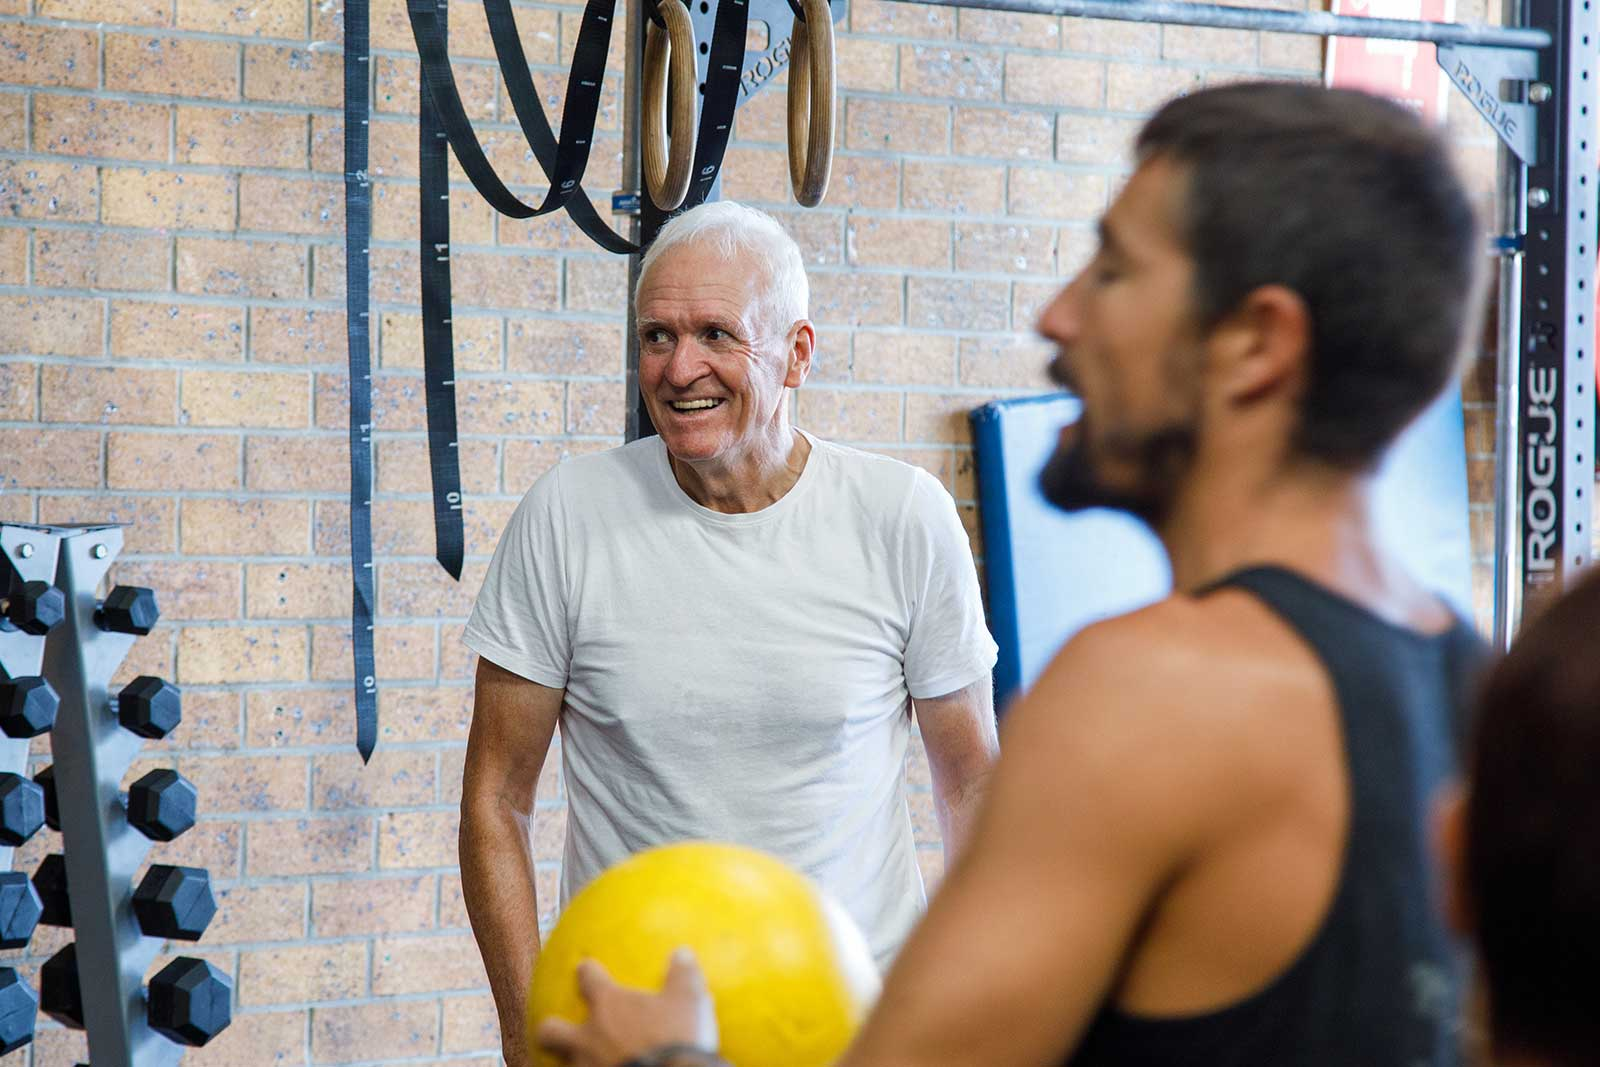 a man laughing and happy at a gym class.